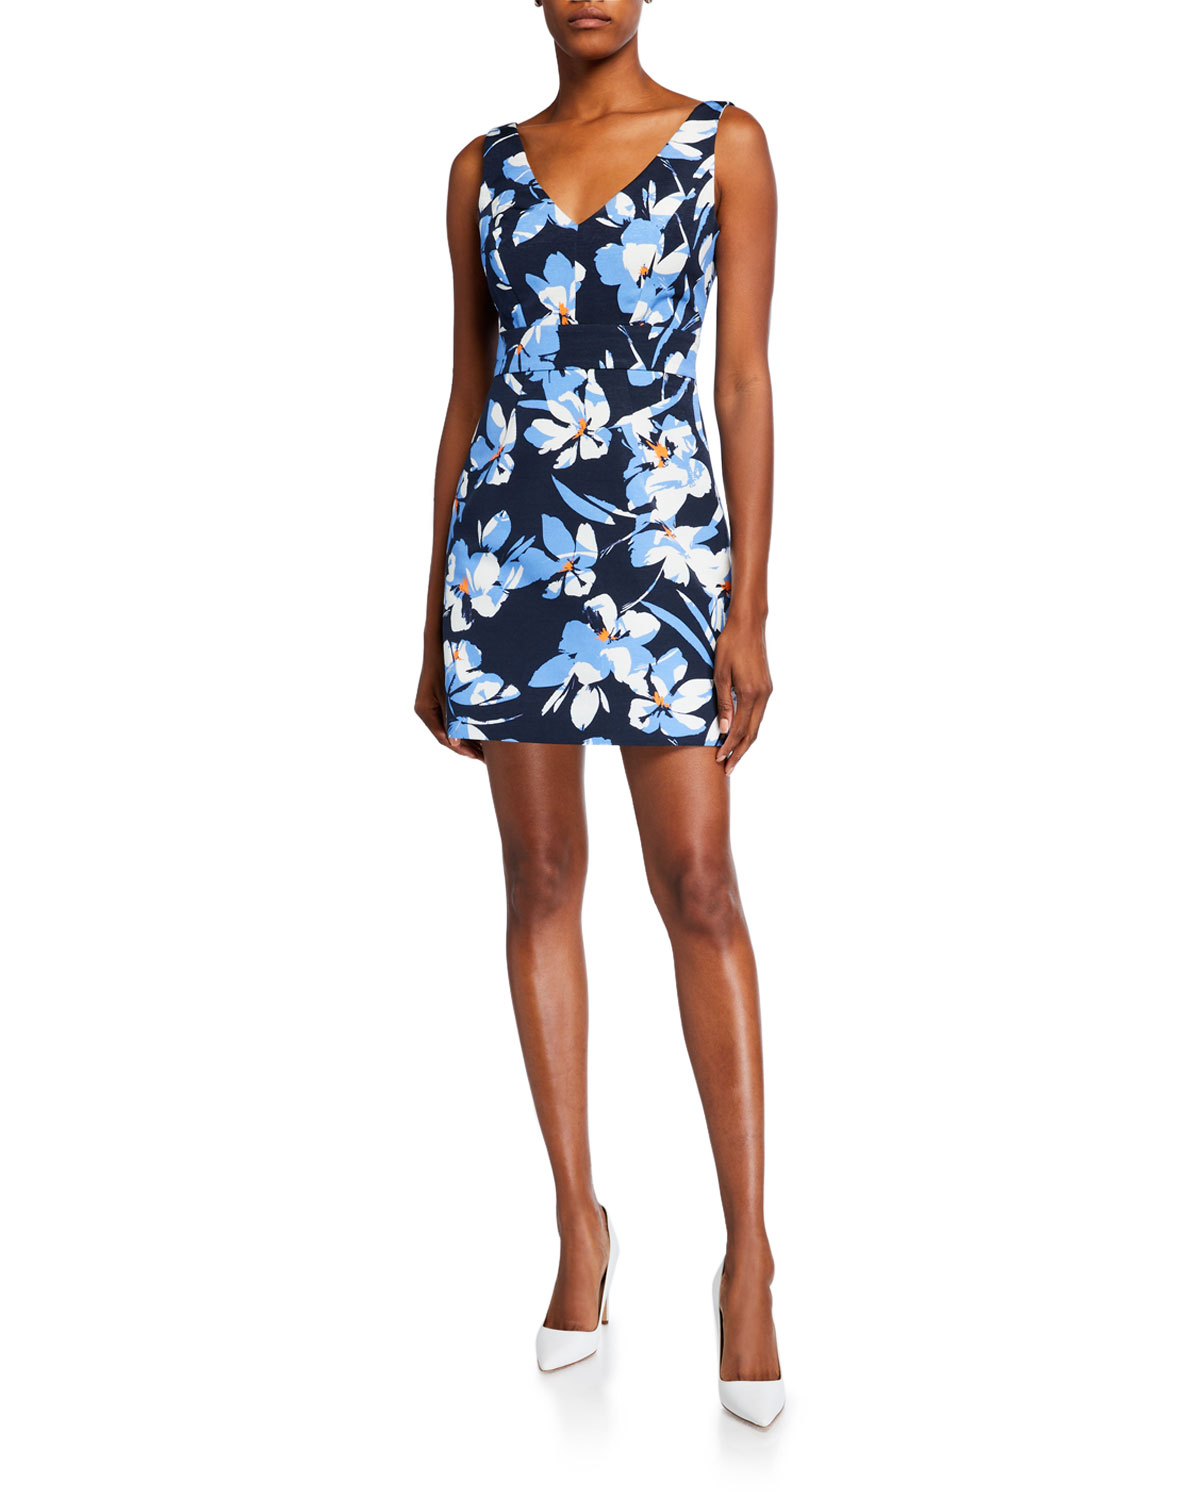 Milly Hibiscus Printed V-Neck Sleeveless Faille Dress In Navy Multi